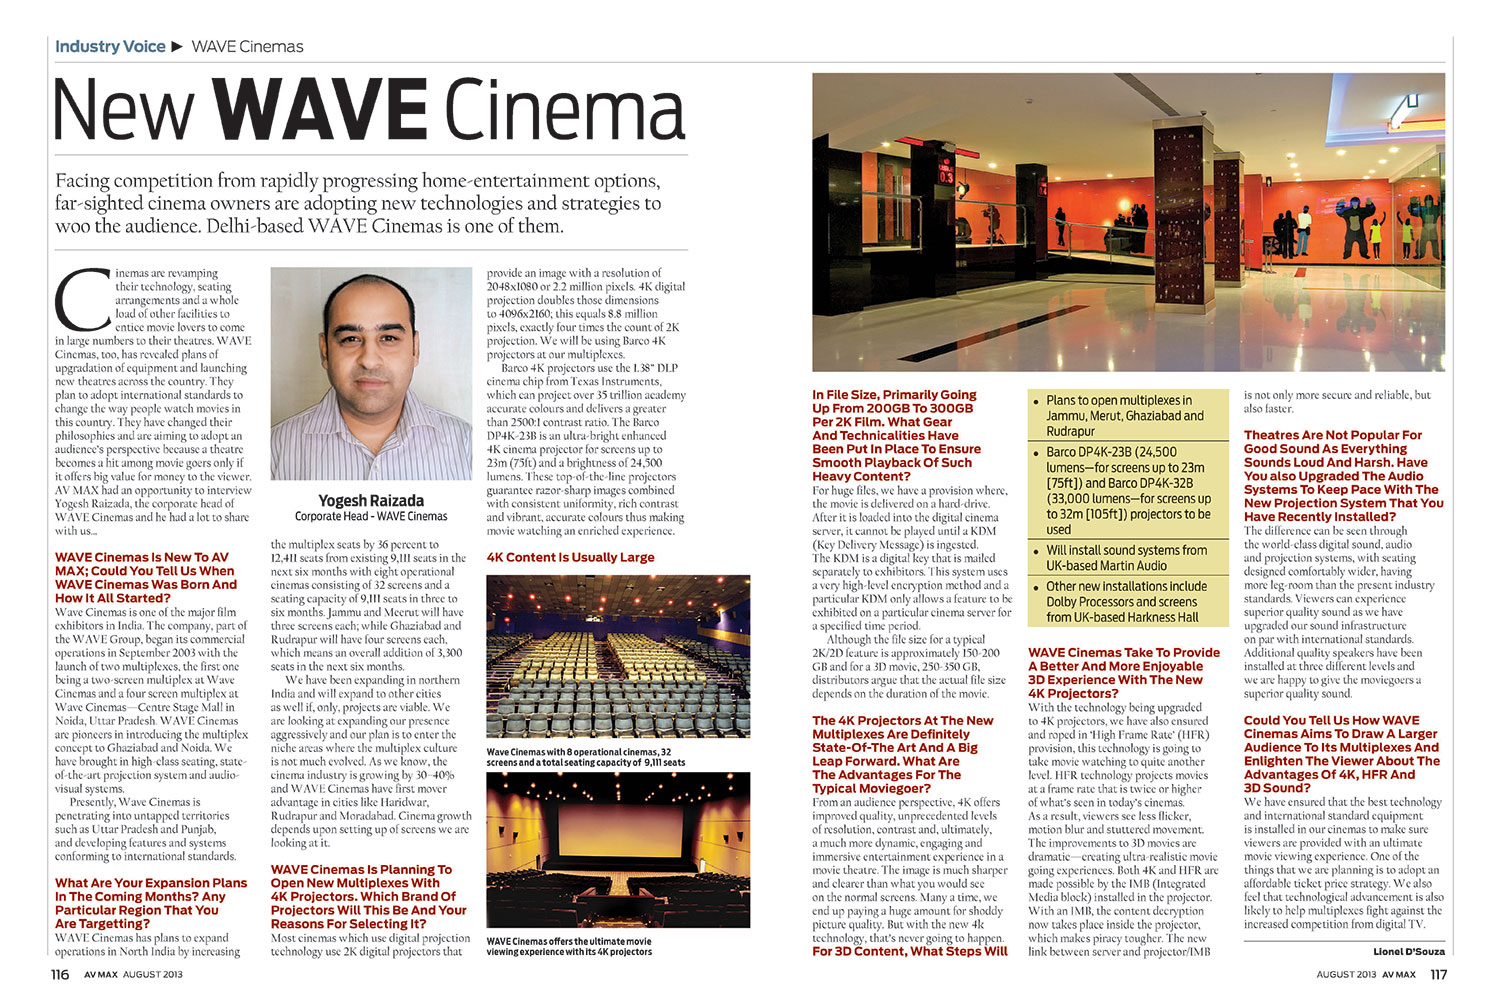 New WAVE Cinemas